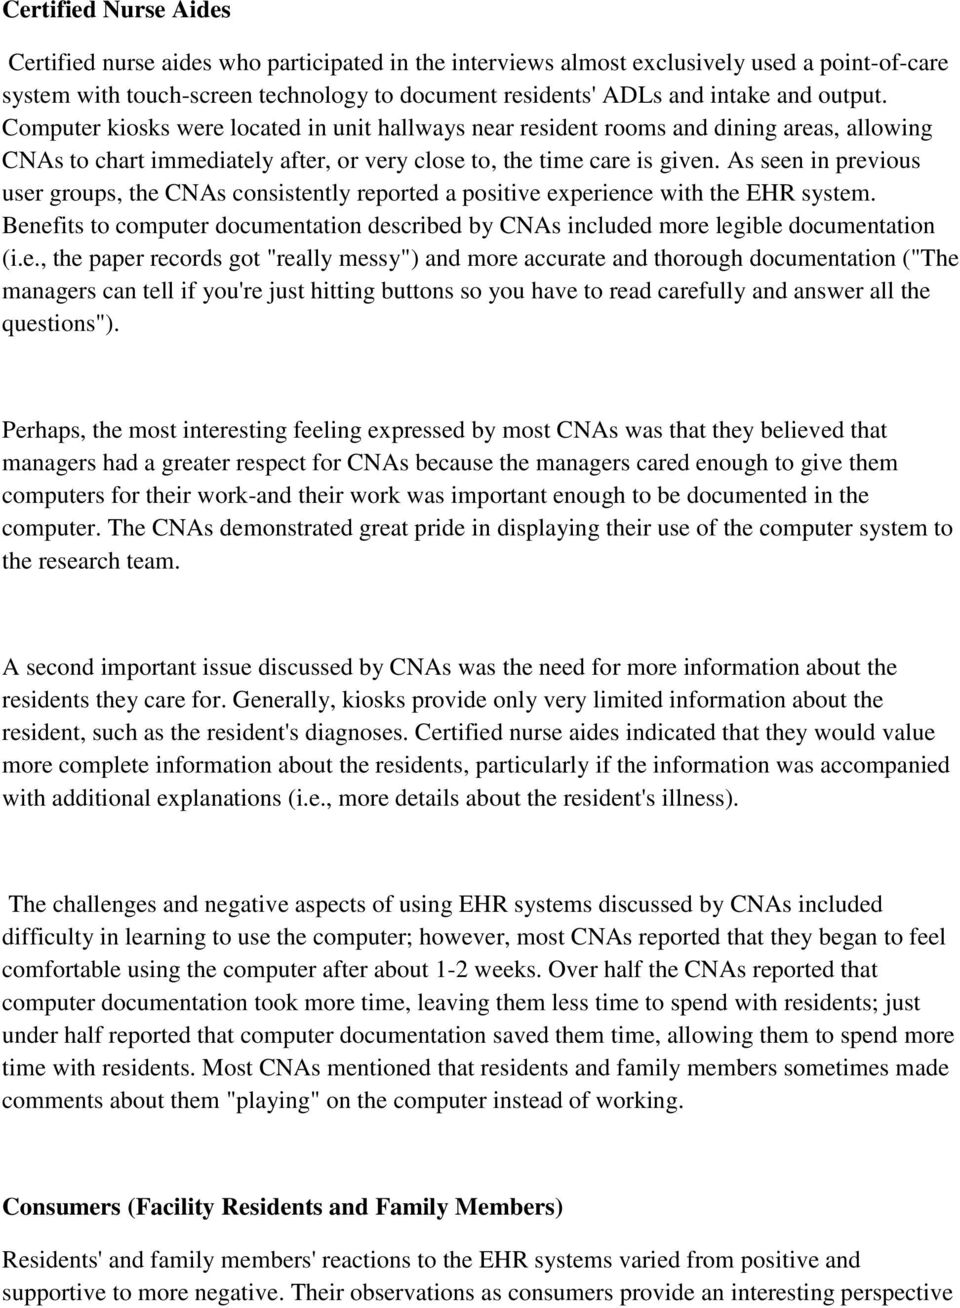 As seen in previous user groups, the CNAs consistently reported a positive experience with the EHR system. Benefits to computer documentation described by CNAs included more legible documentation (i.